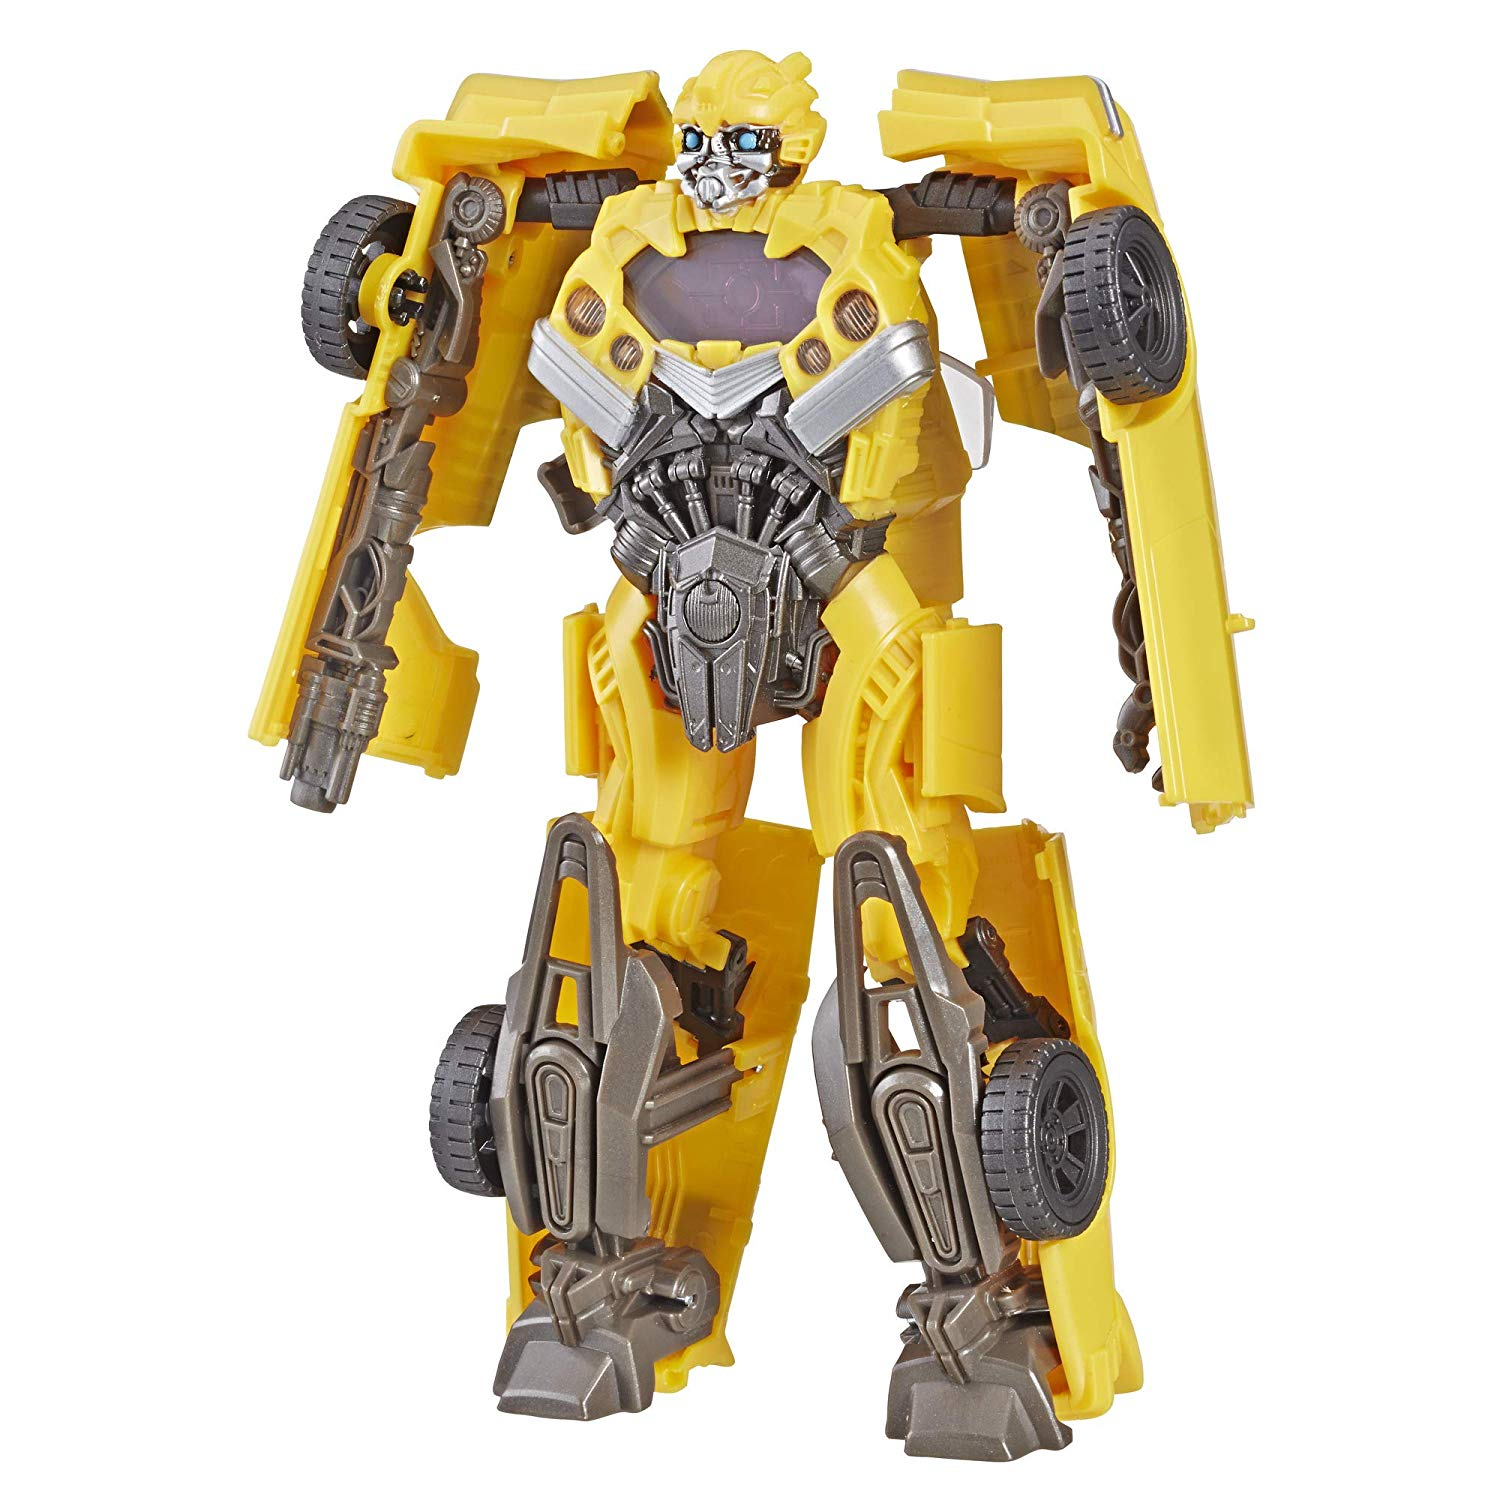 Transformers mission vision bumblebee subline revealed transformers news tfw2005 - Images of bumblebee from transformers ...